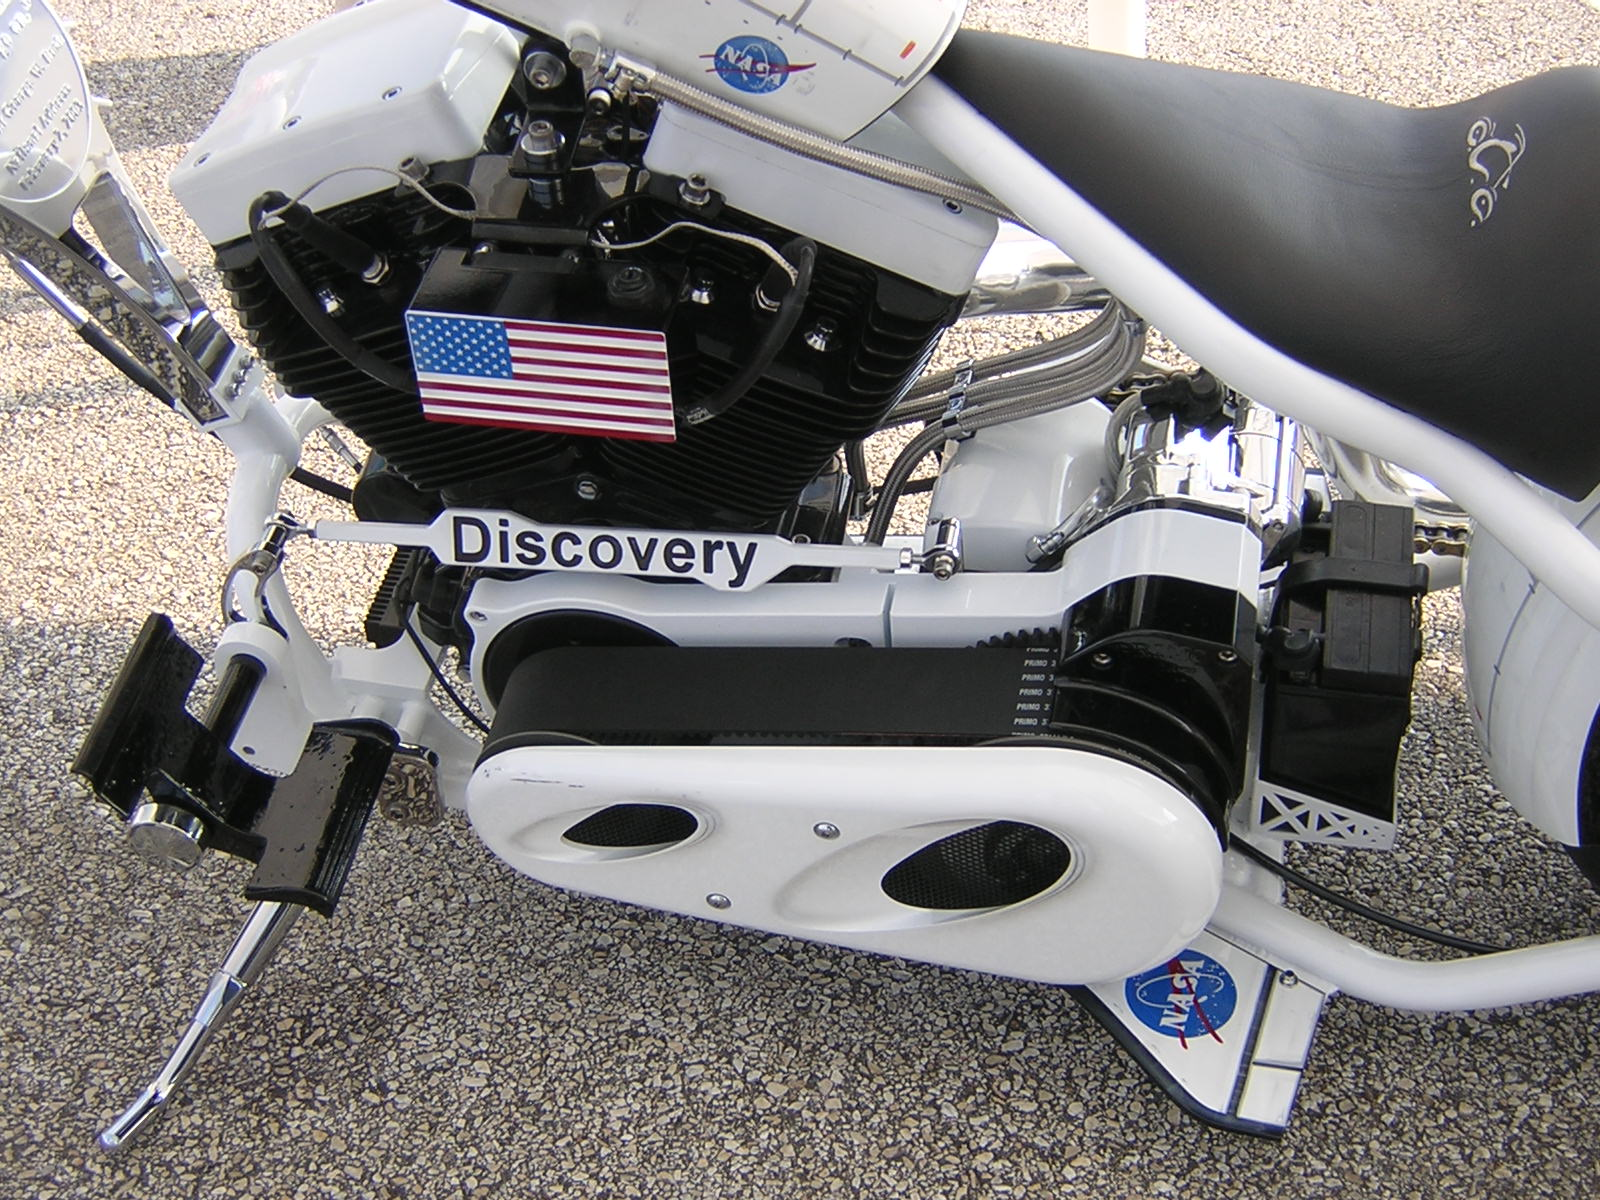 space shuttle bike occ - photo #26